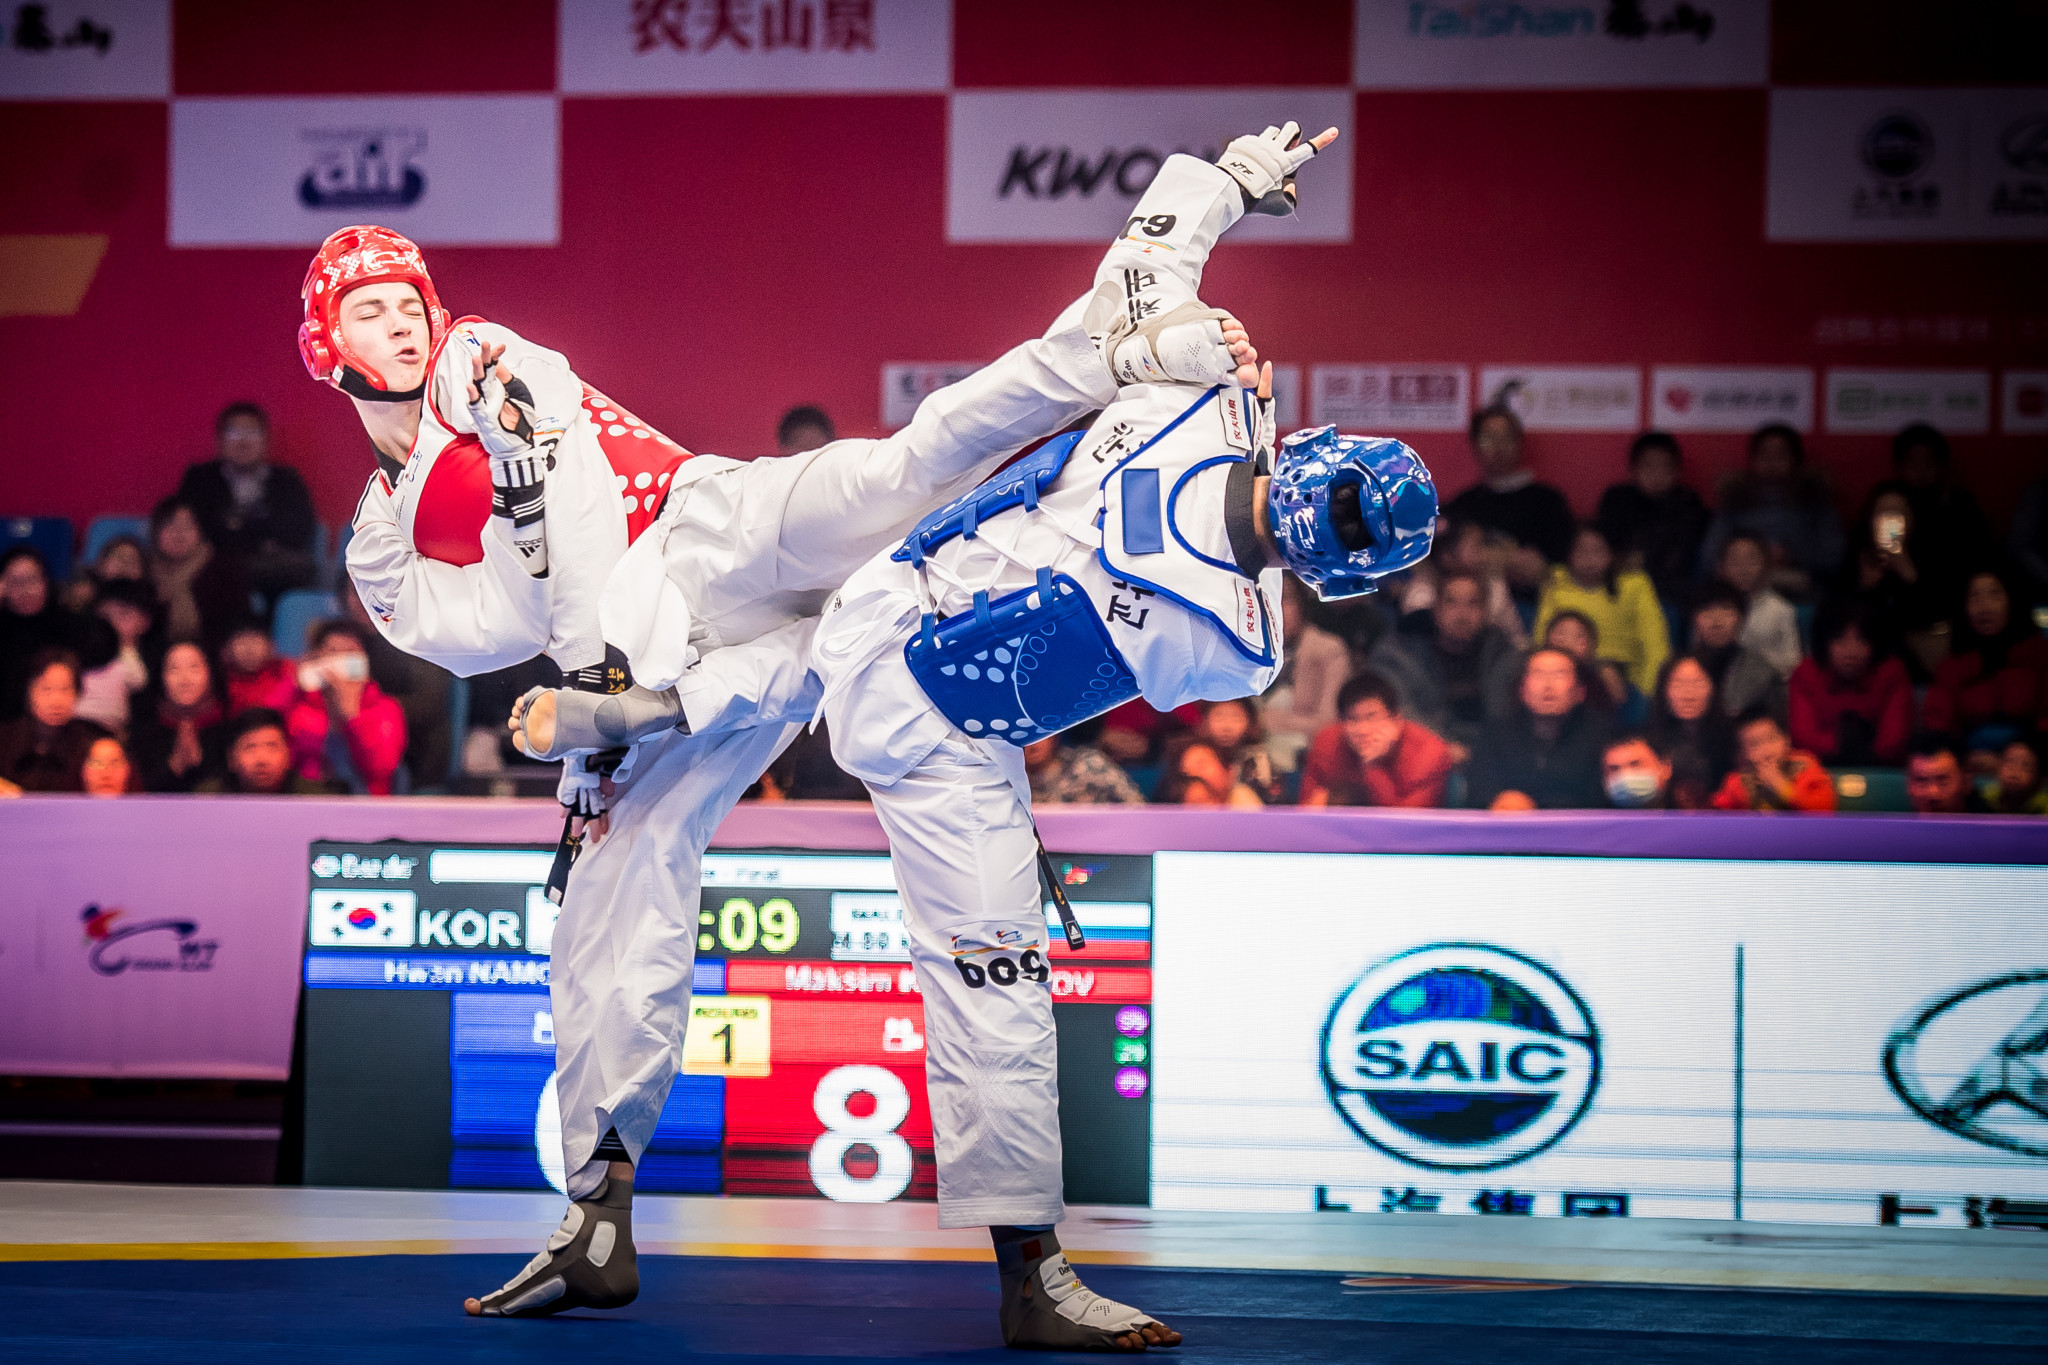 Khramtcov came out on top in the men's under 80kg division with a 35-29 win over South Korea's Hwan Namgoong ©World Taekwondo